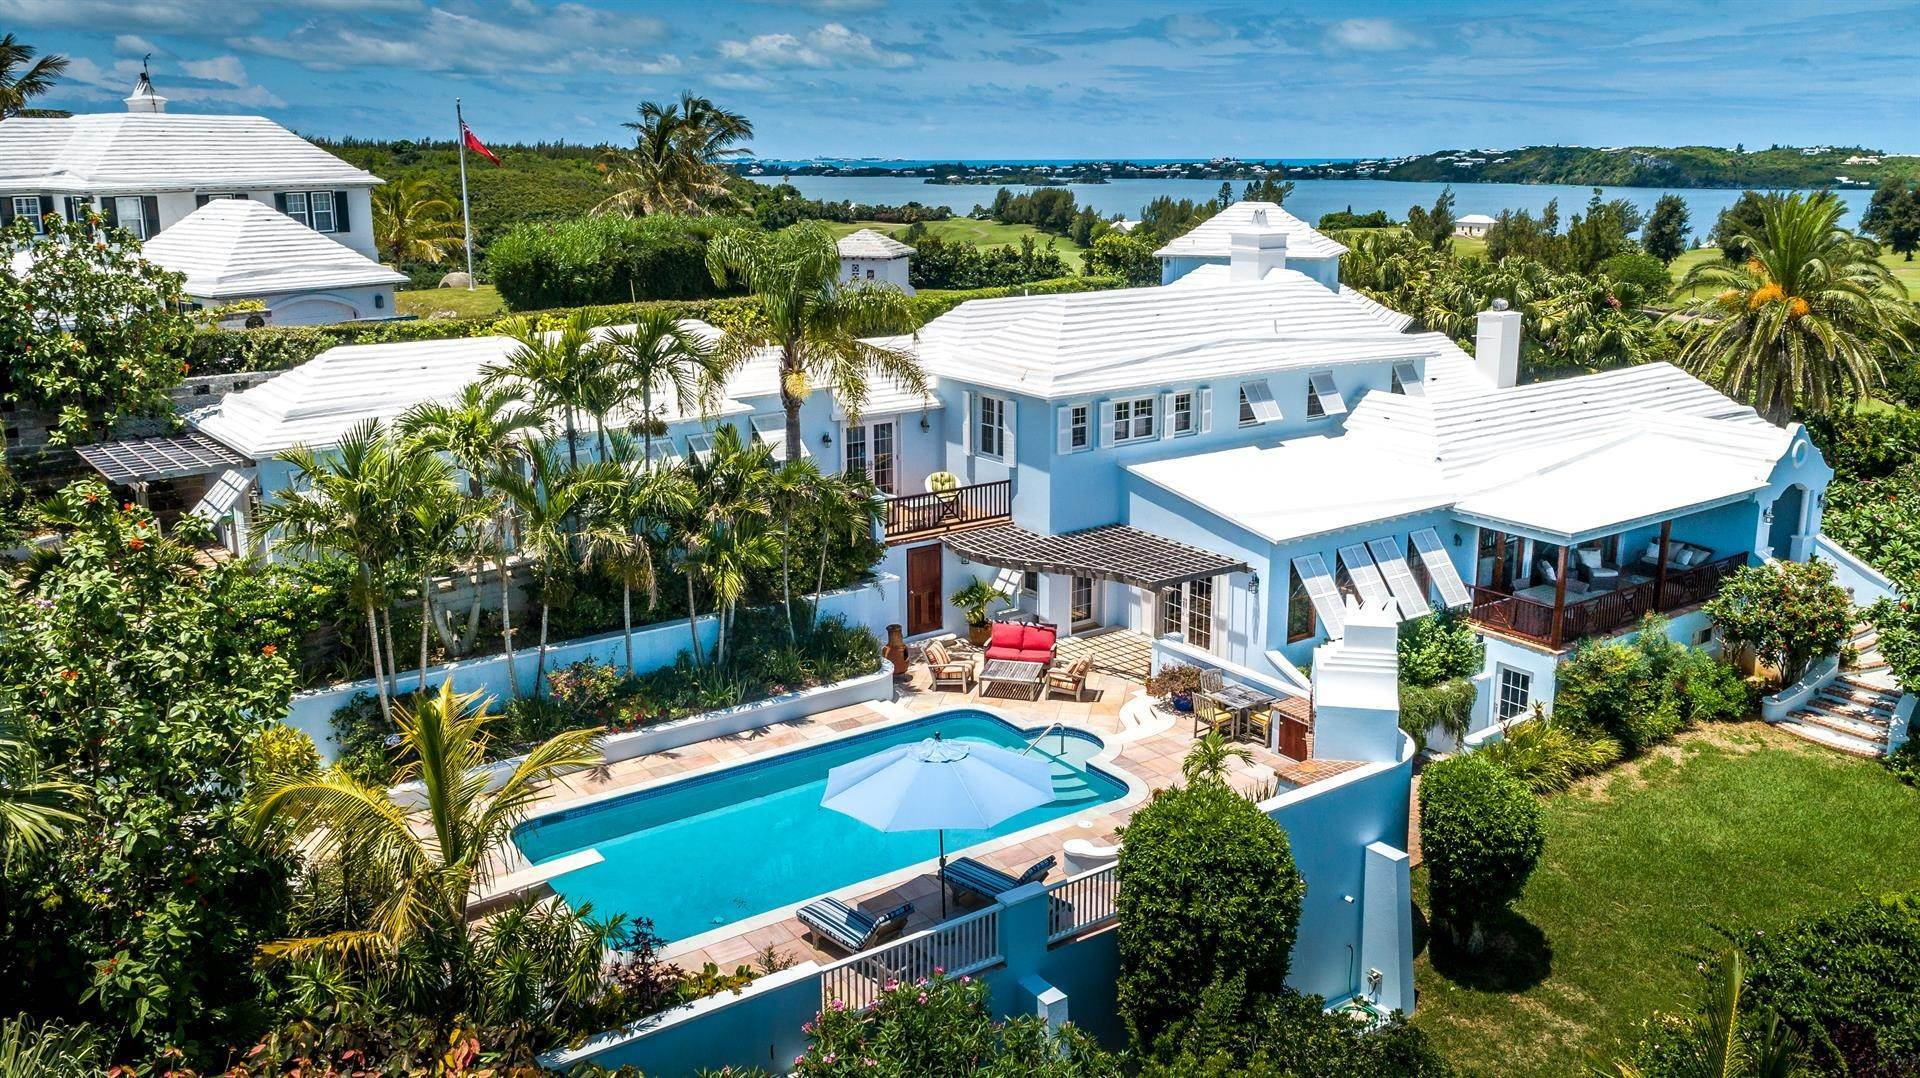 Single Family Home por un Venta en Tobermory In Tucker's Town Hamilton Parish, Bermuda,HS02 Bermuda